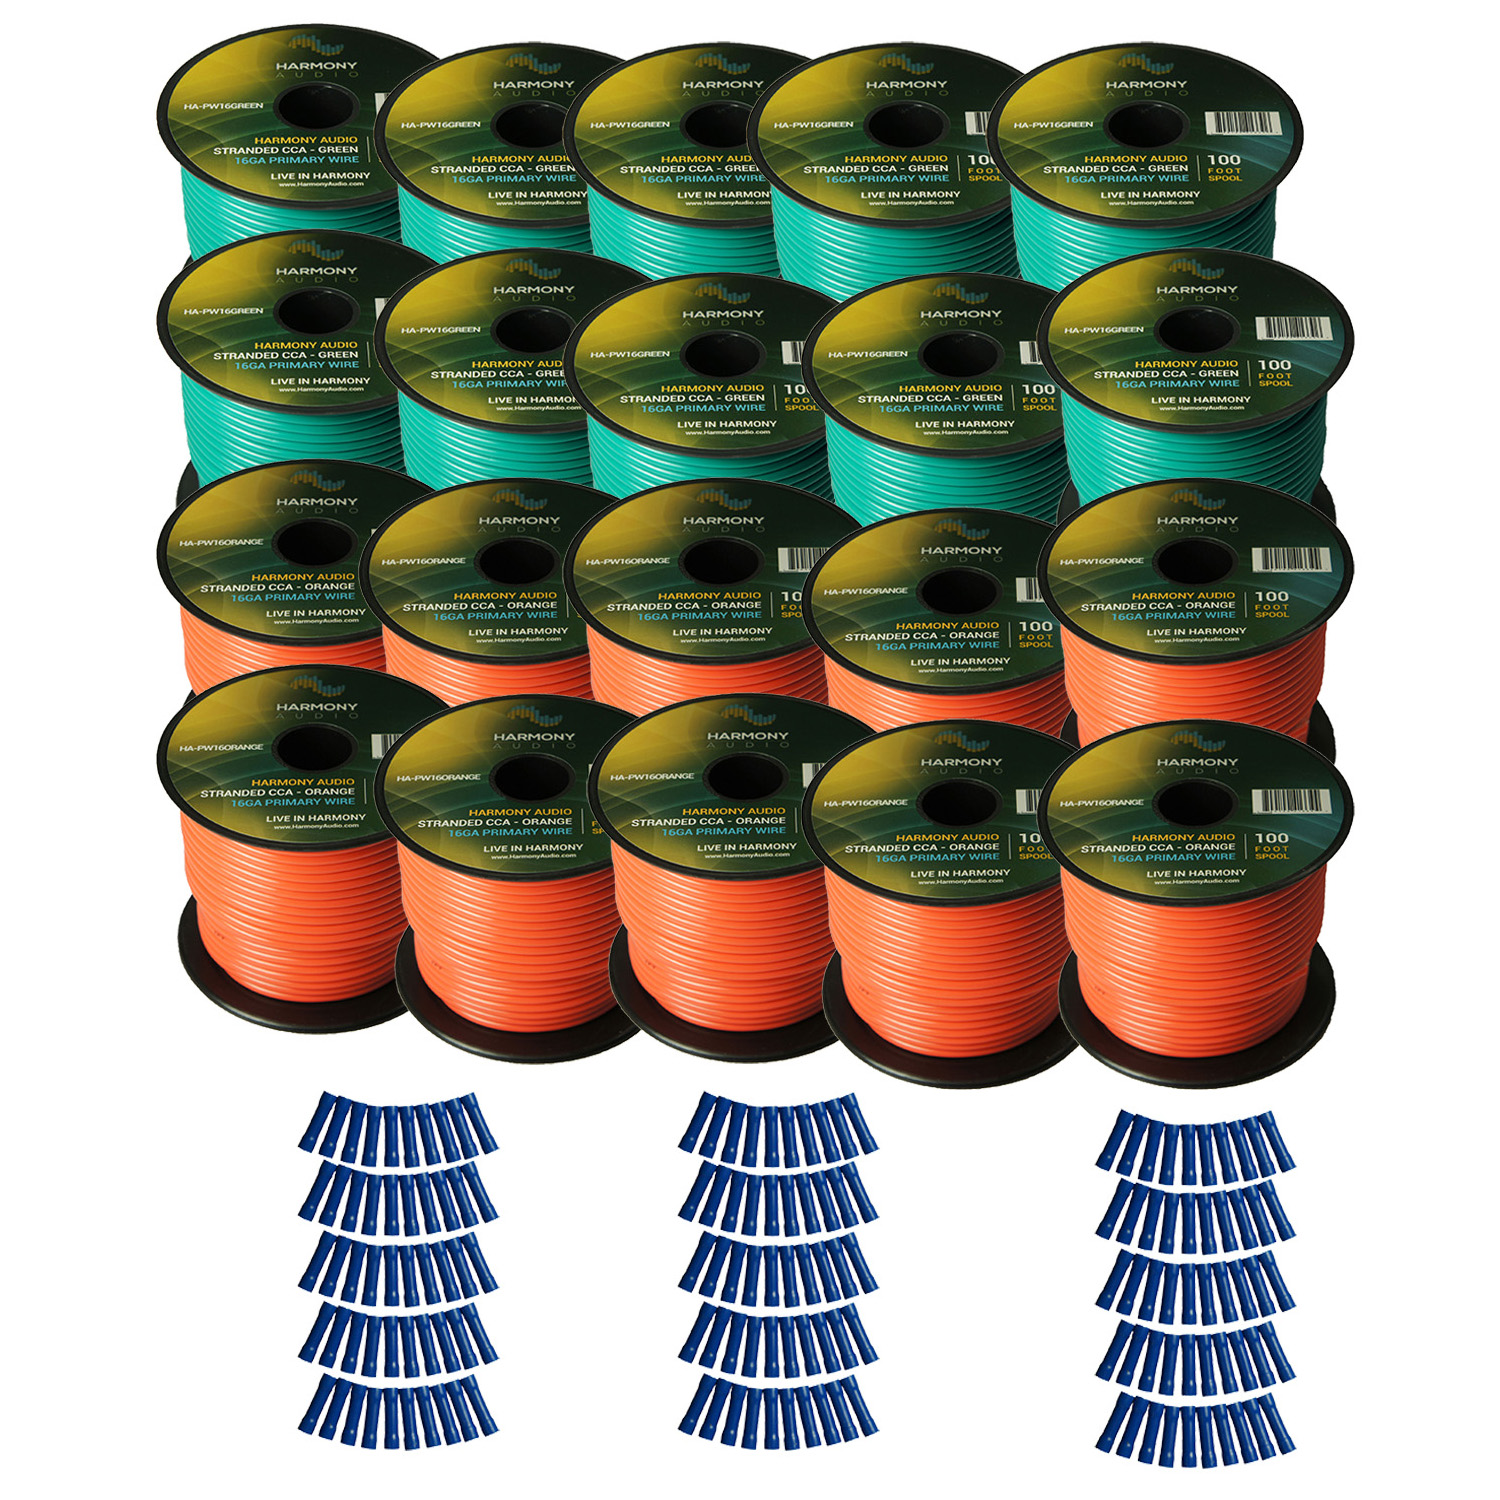 Harmony Audio Primary Single Conductor 16 Gauge Power or Ground Wire - 20 Rolls - 2000 Feet - Green & Orange for Car Audio / Trailer / Model Train / Remote